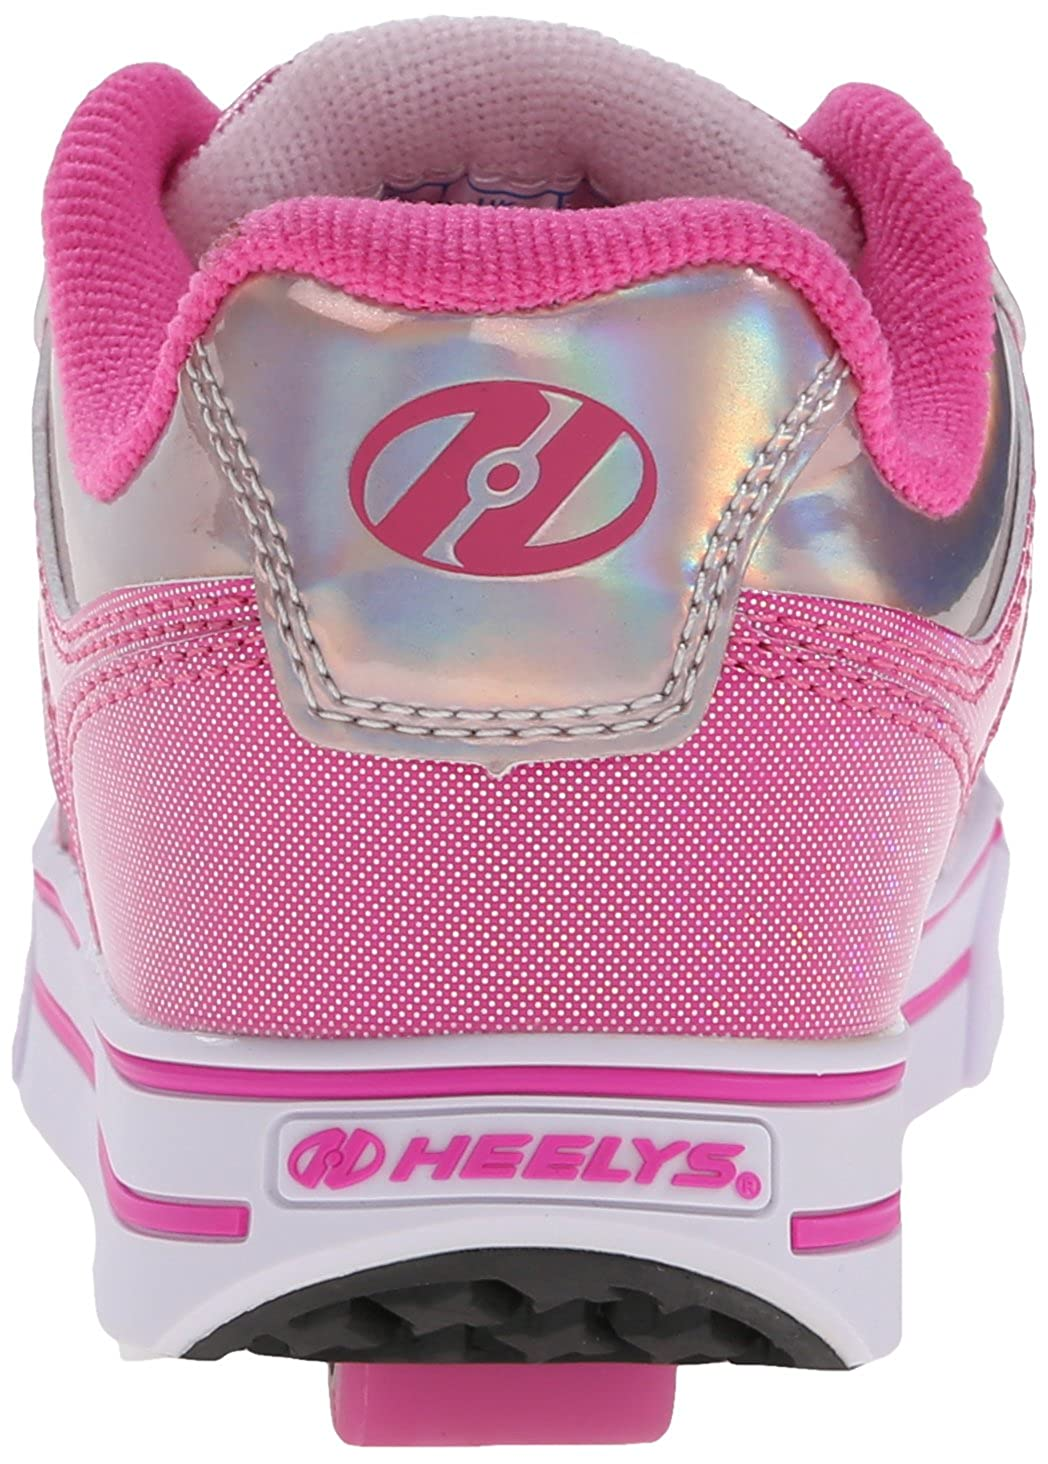 MOTION K Heelys Motion Skate Shoe Little Kid//Big Kid